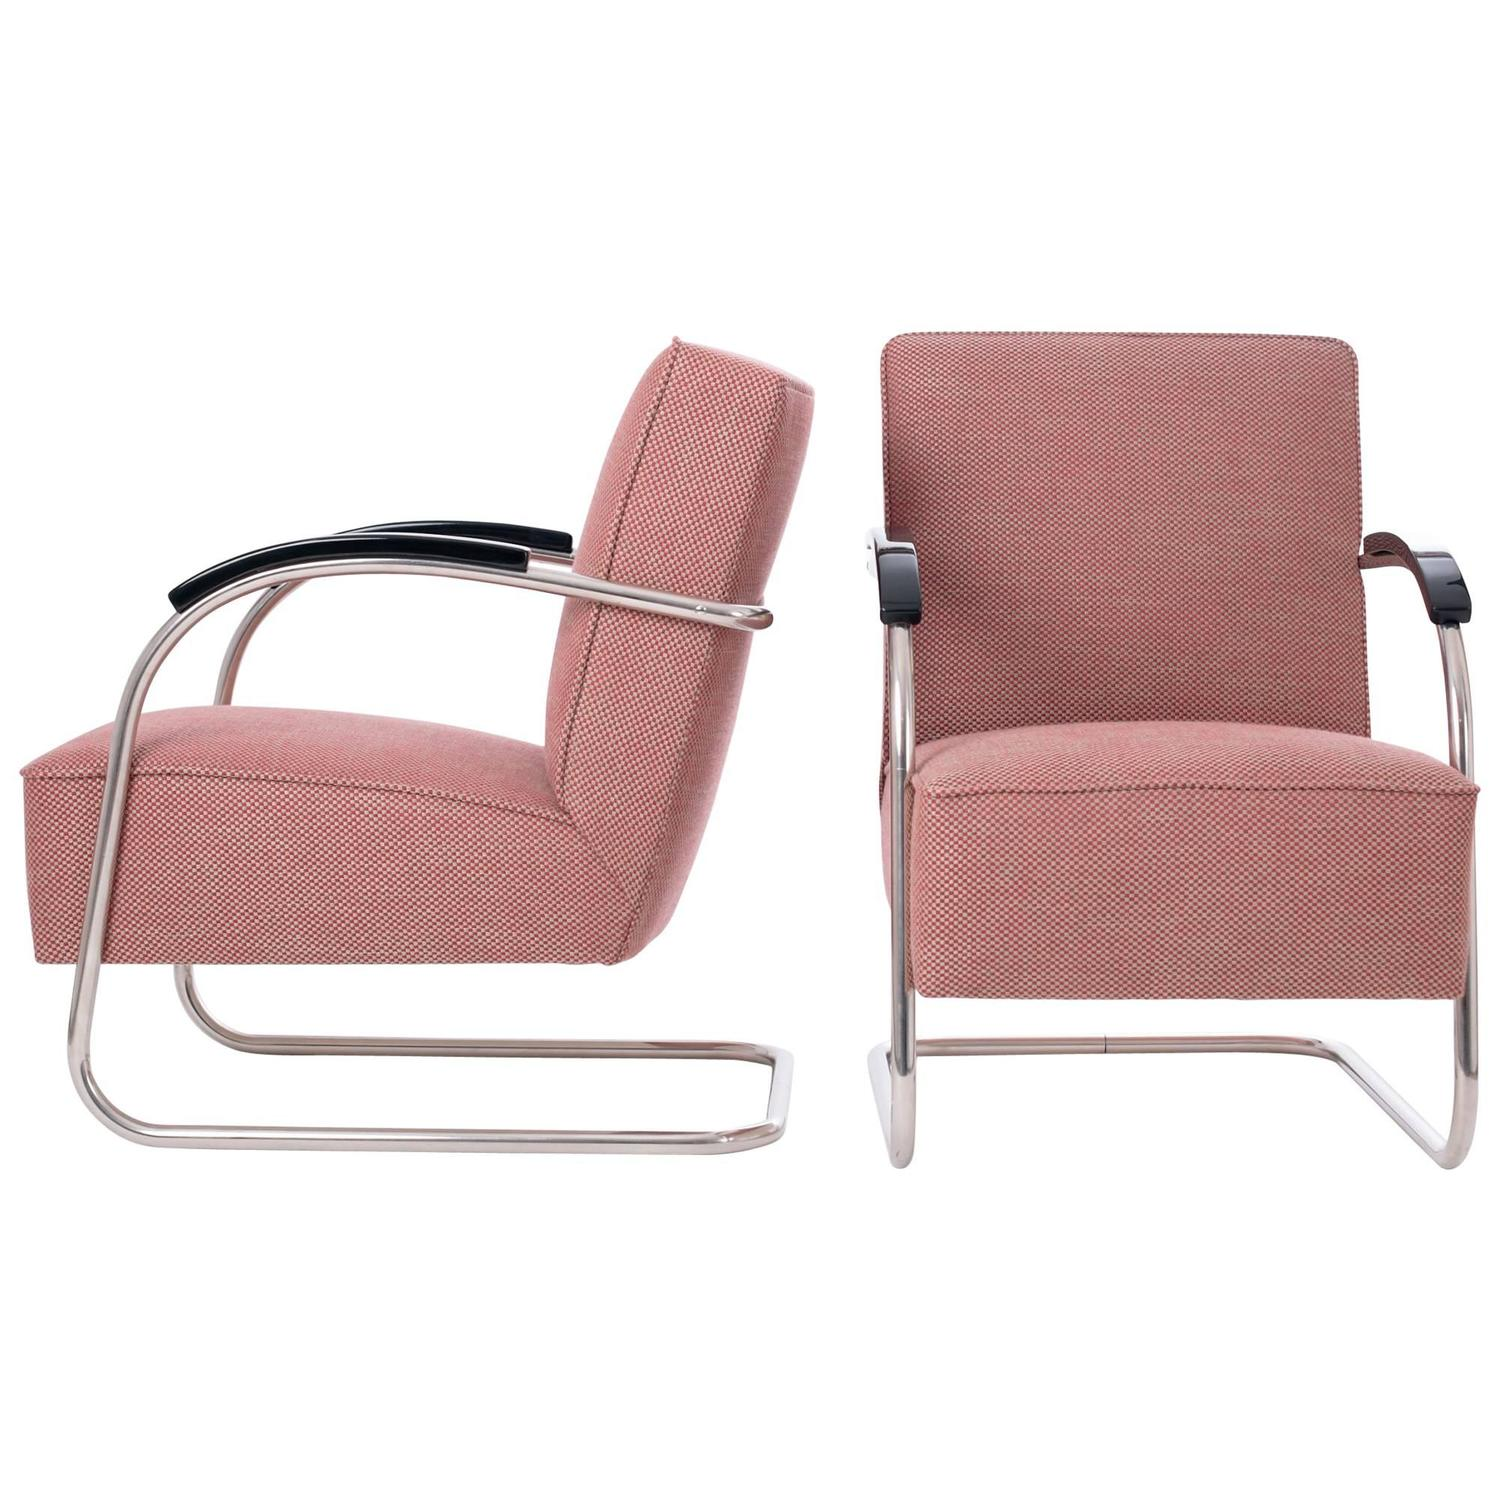 Bauhaus tubular steel lounge chair at 1stdibs - Fn 21 Tubular Steel Armchairs From M Cke And Melder 1930s For Sale At 1stdibs